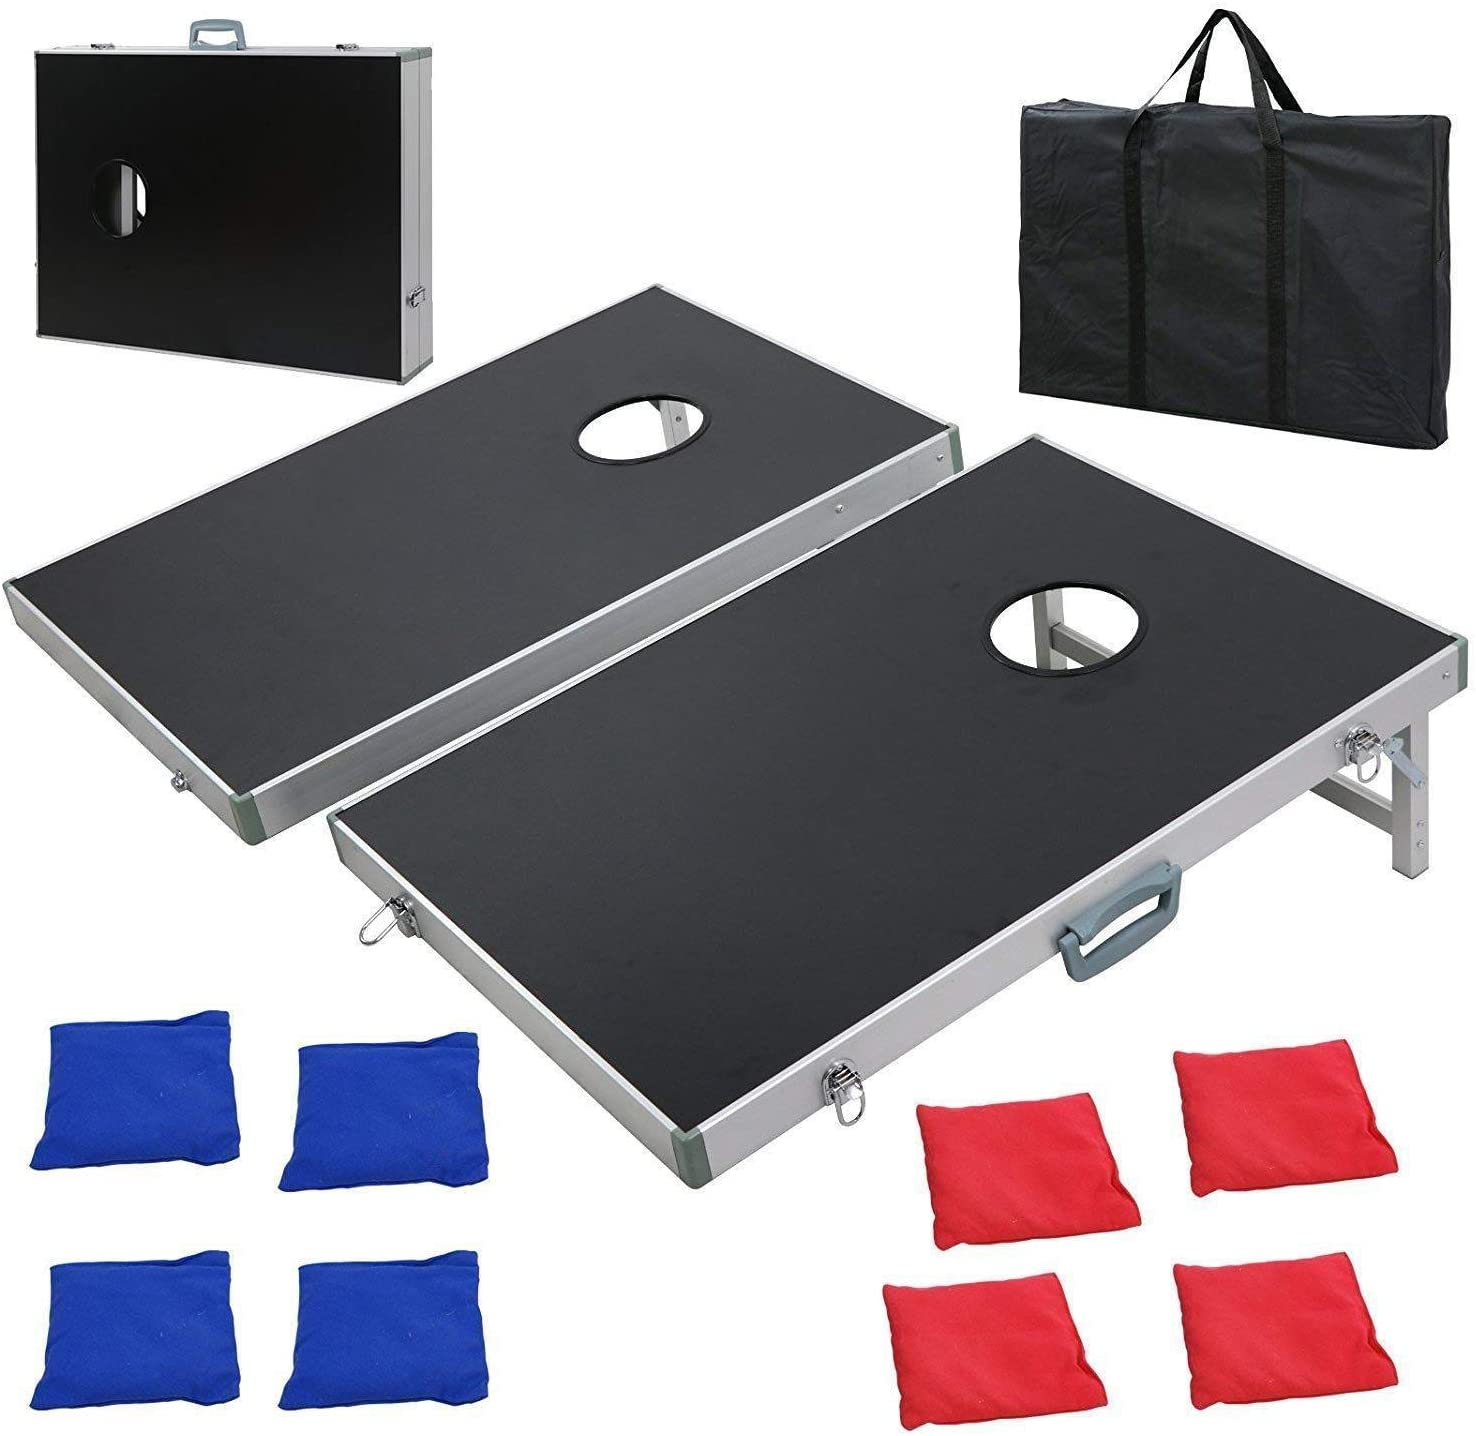 nitipezzo Durable Aluminum Construction and Waterproof Cornhole Bean Bag Toss Game Set Aluminum Frame Portable Design with Carrying Case